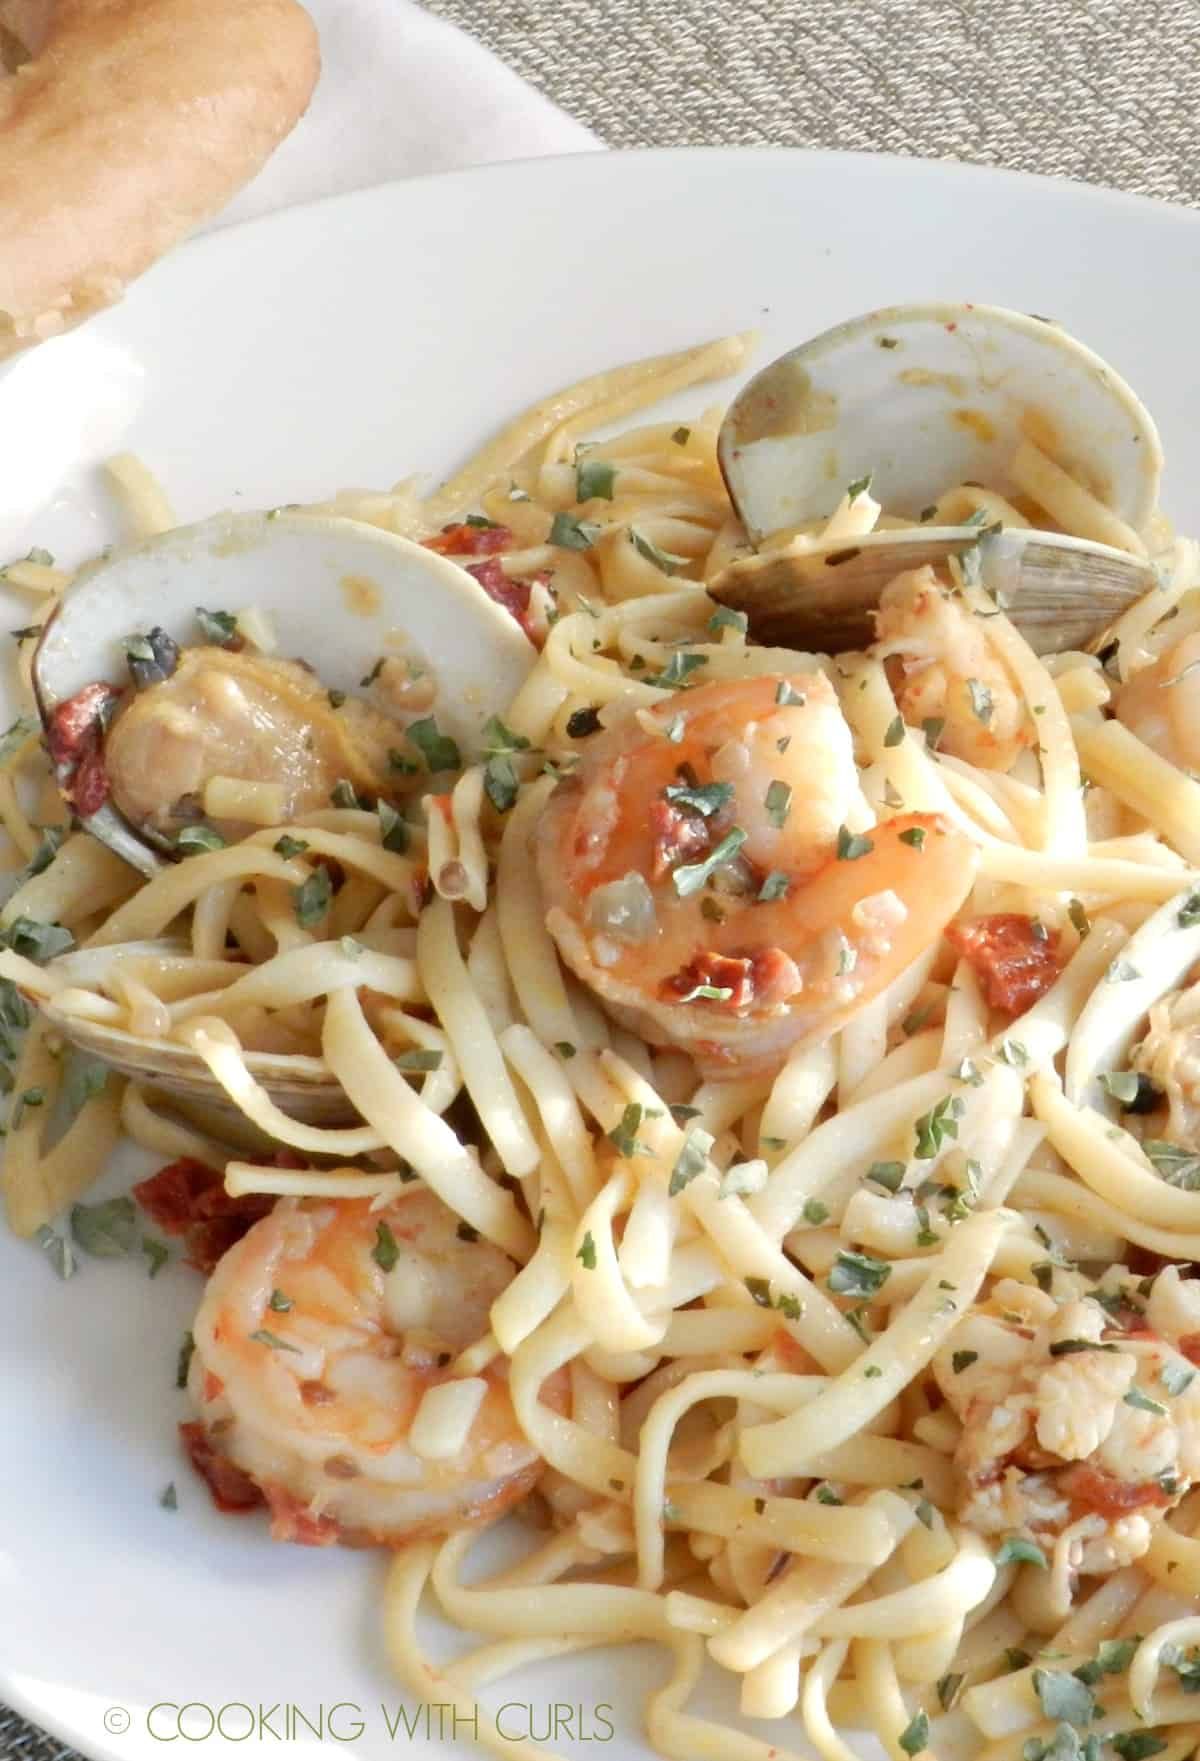 a close up view of a plate of Italian Seafood Pasta on a white plate.